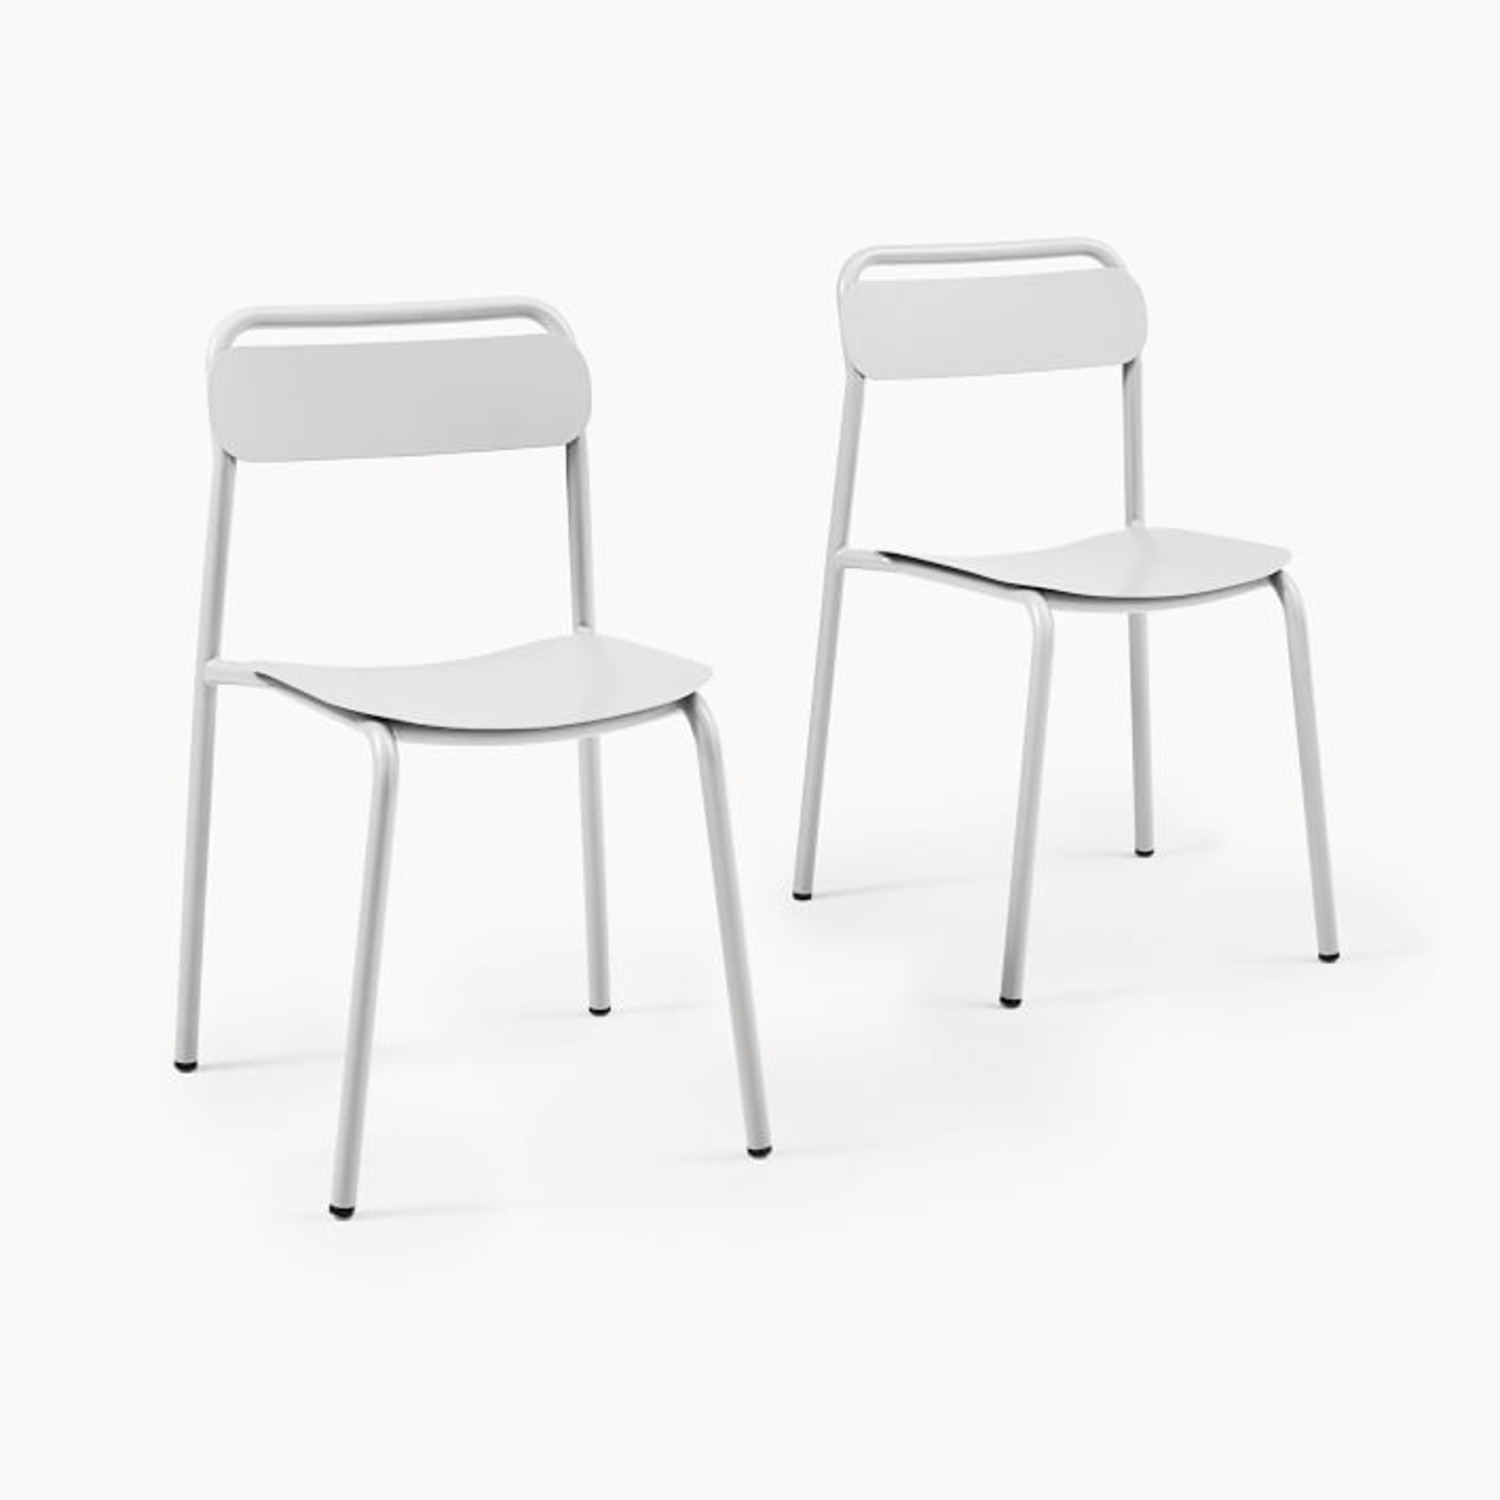 West Elm Outdoor Metal Stacking Chair,  Set of 2 - image-2